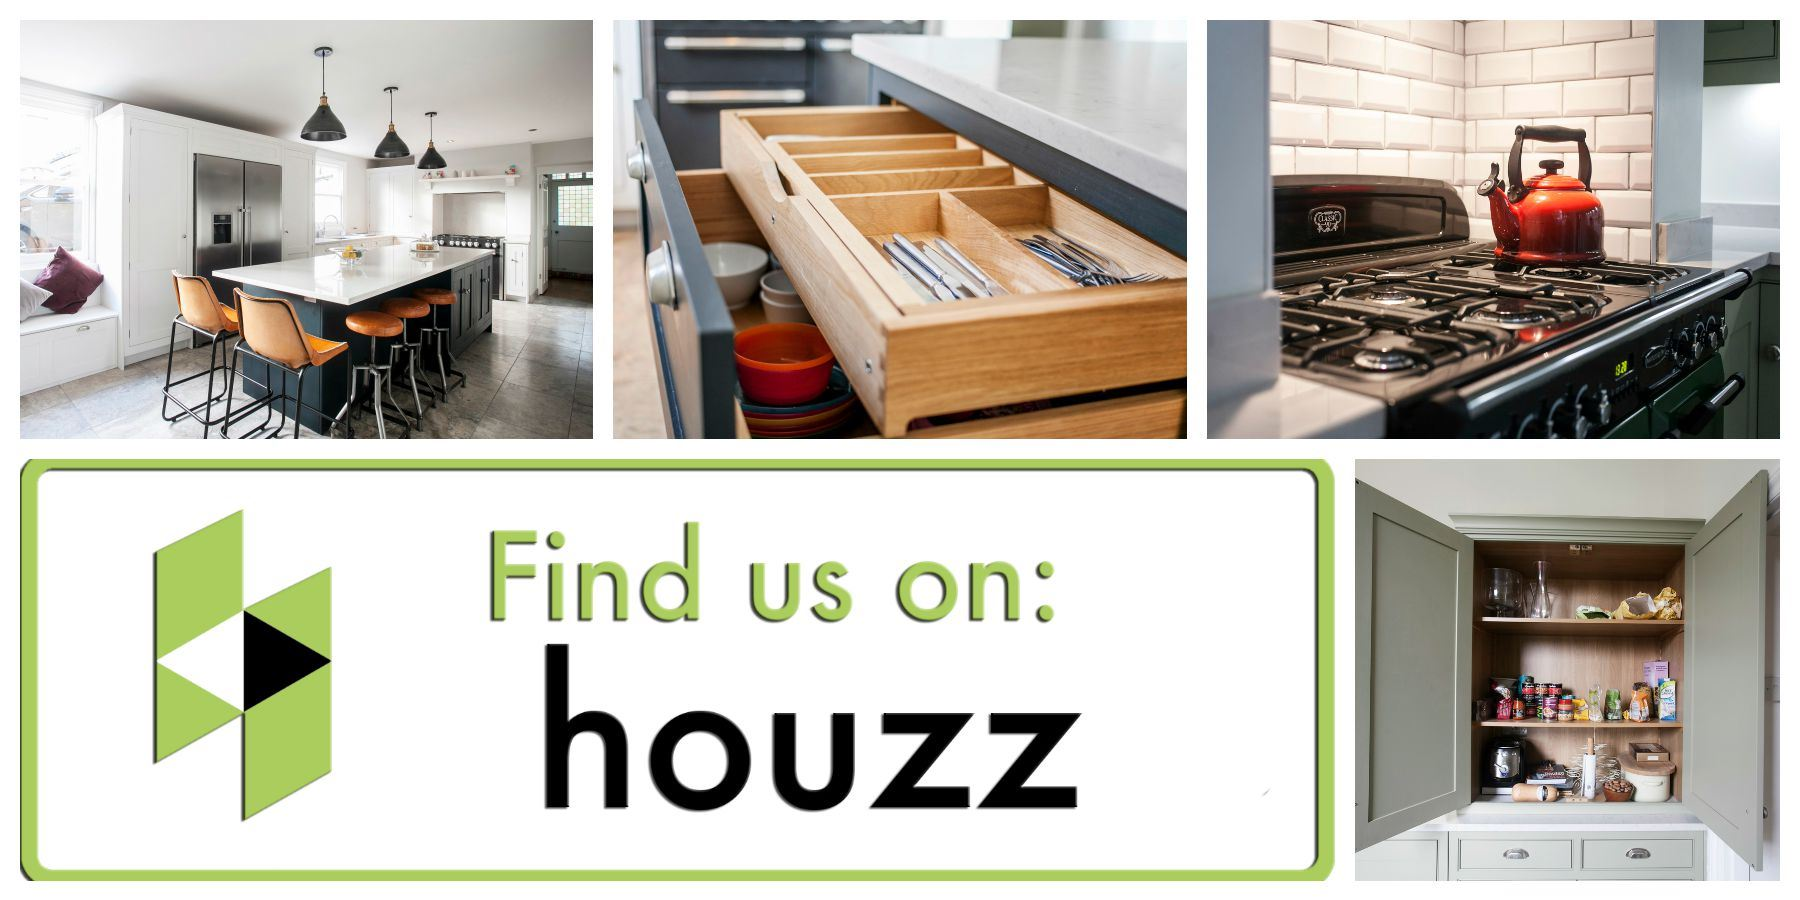 Find Burlanes on Houzz - Burlanes design and handmake furniture and interiors of the highest quality. Find us on Houzz.